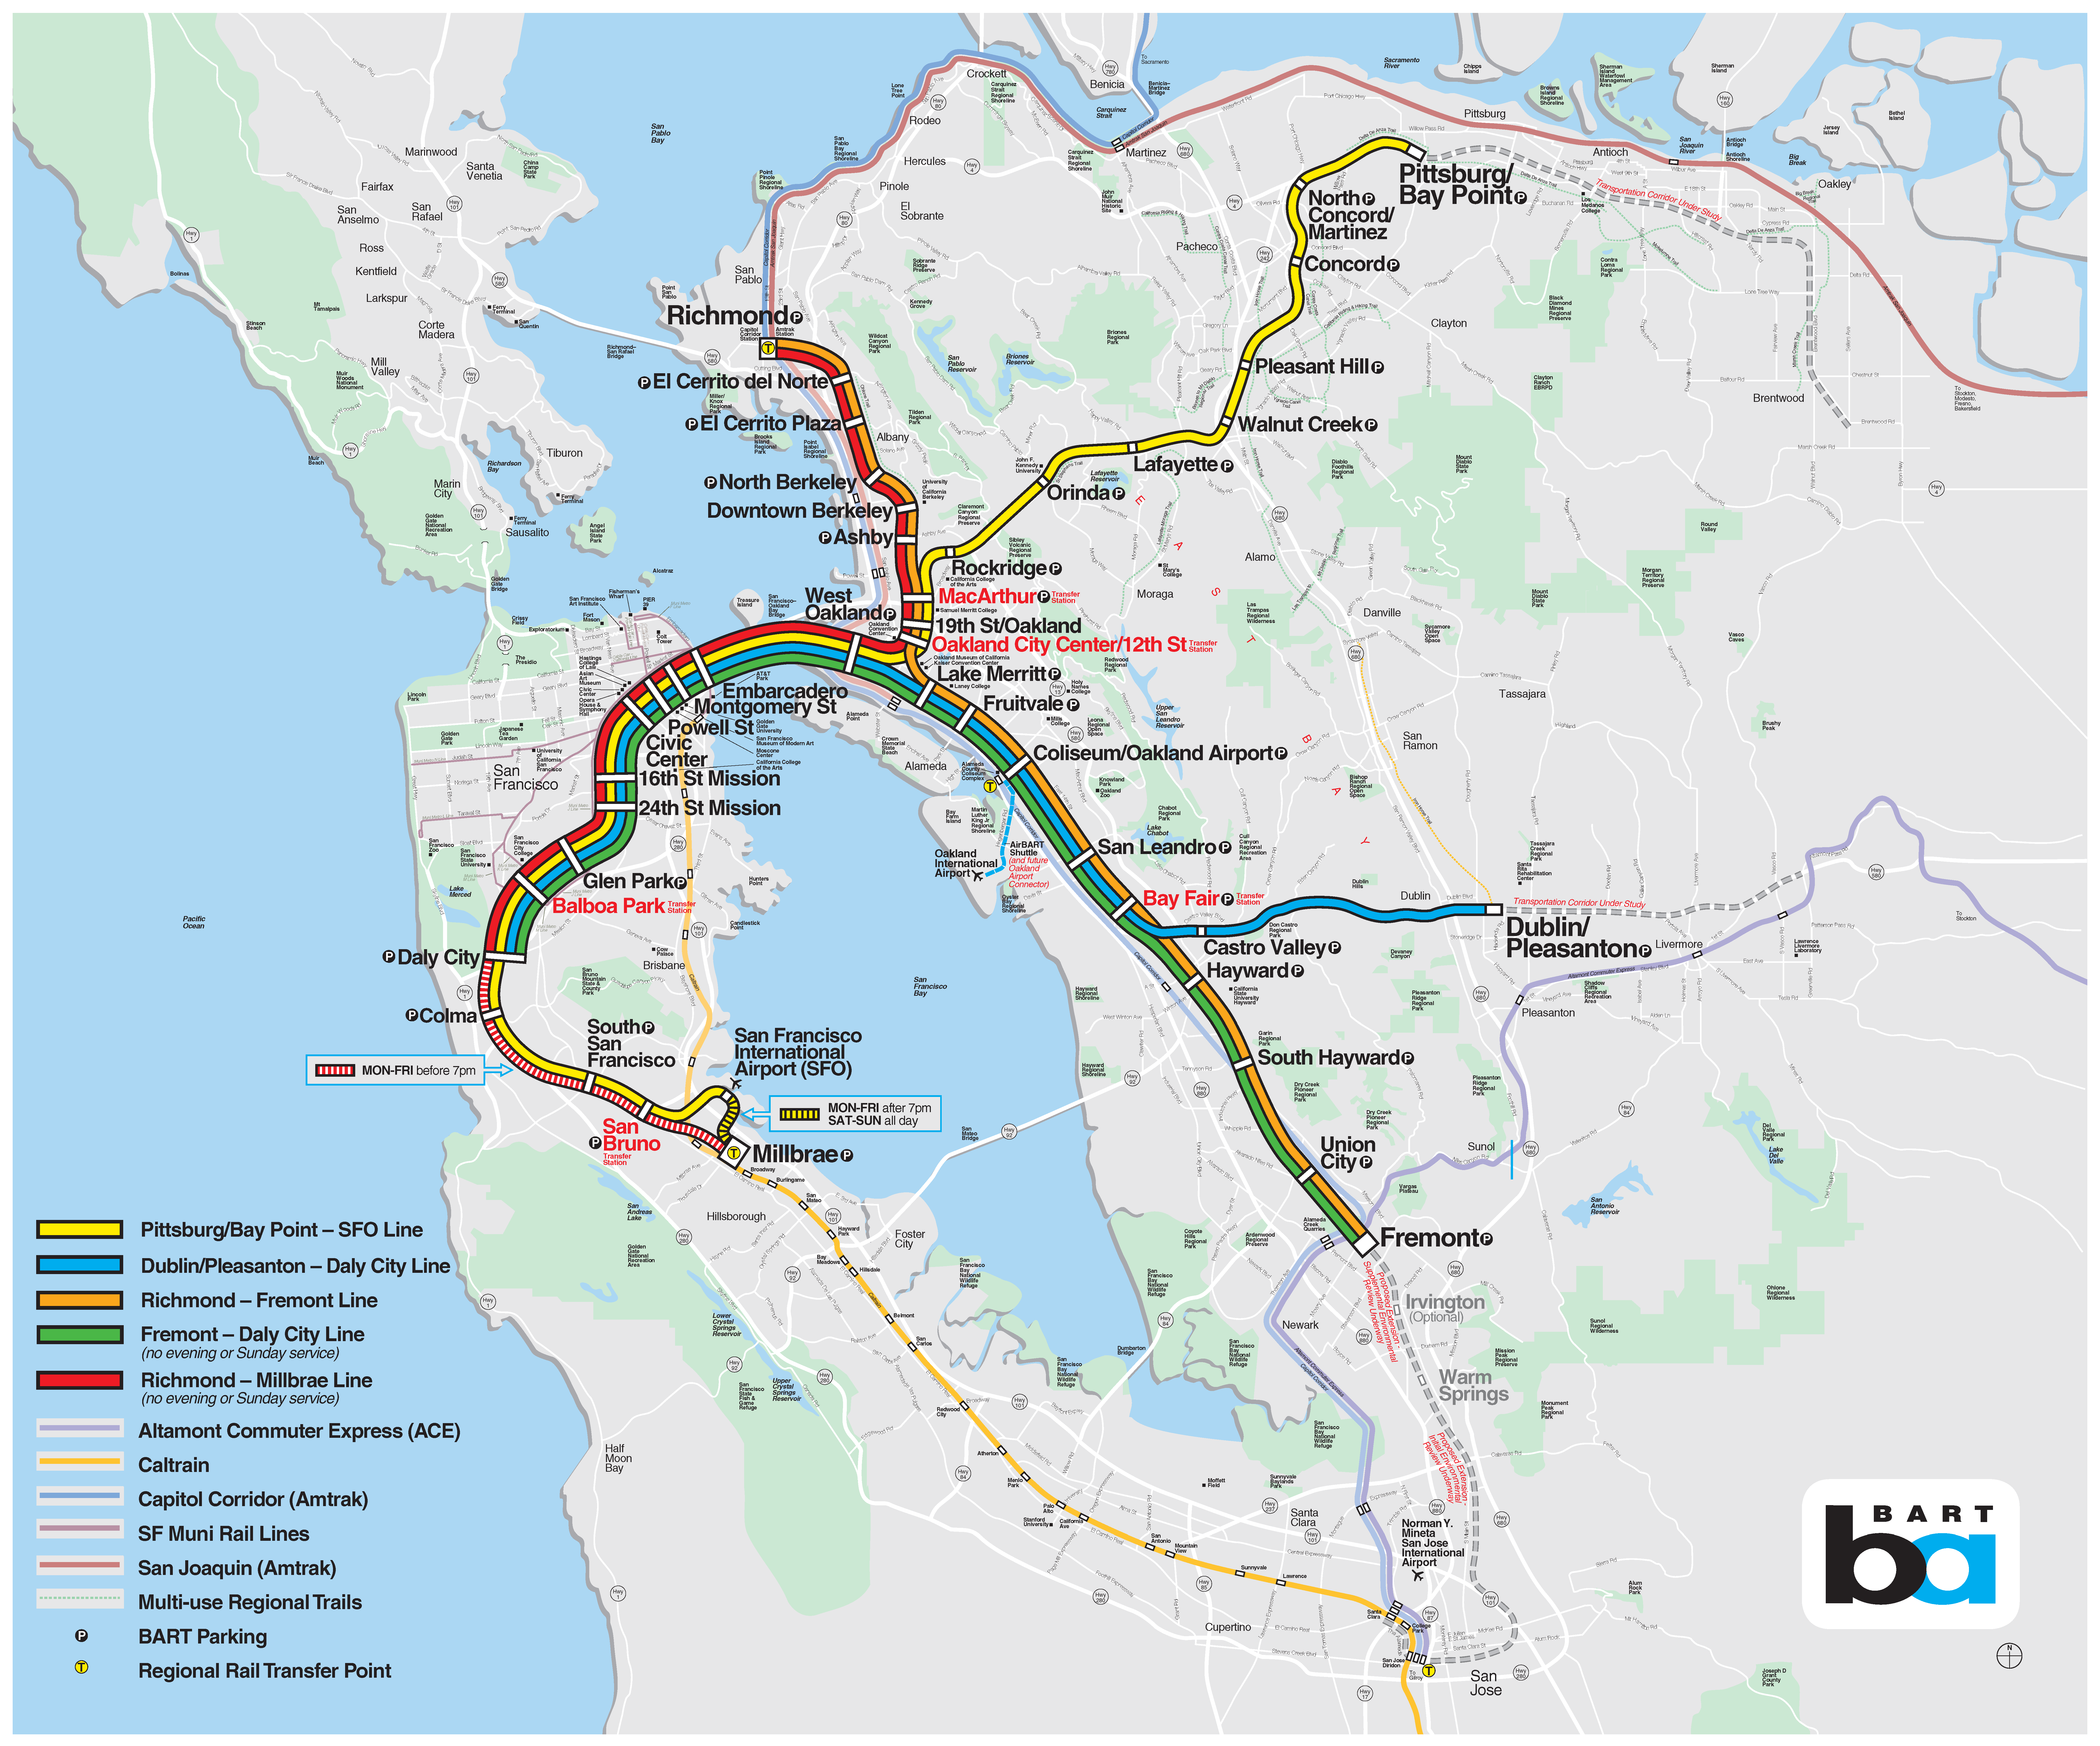 Podcast Explore The History Of The Bart Map Bart Gov All systems listed in this guide, even those that are shuttles, are open to the general public. bart gov